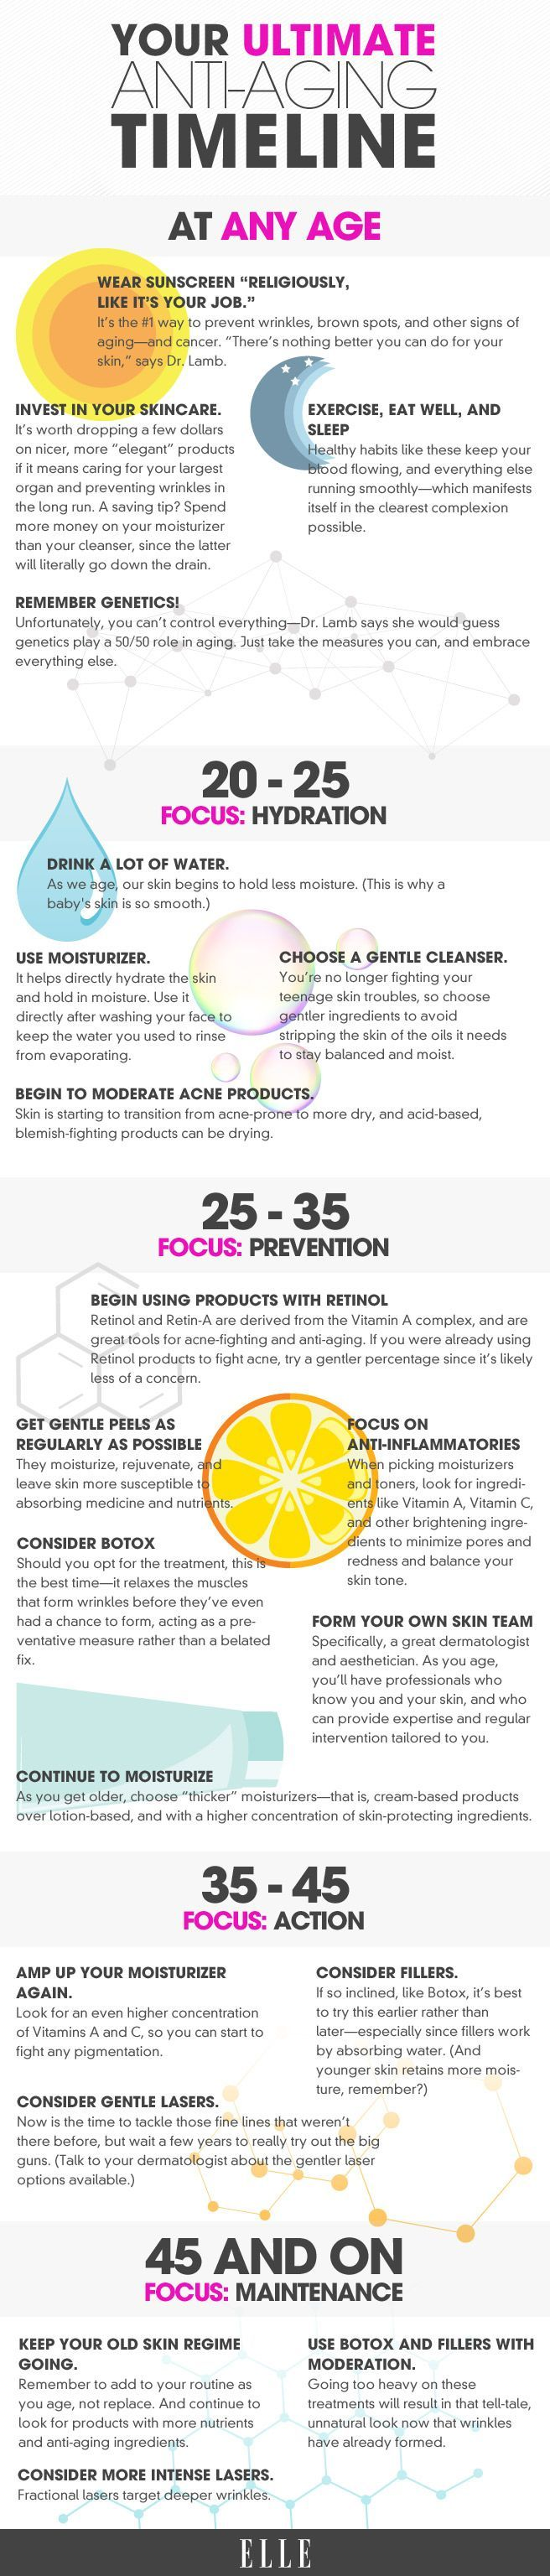 Anti-Aging Skincare Guide for Every Age - Preventative Skincare Infographic - Elle #infographics